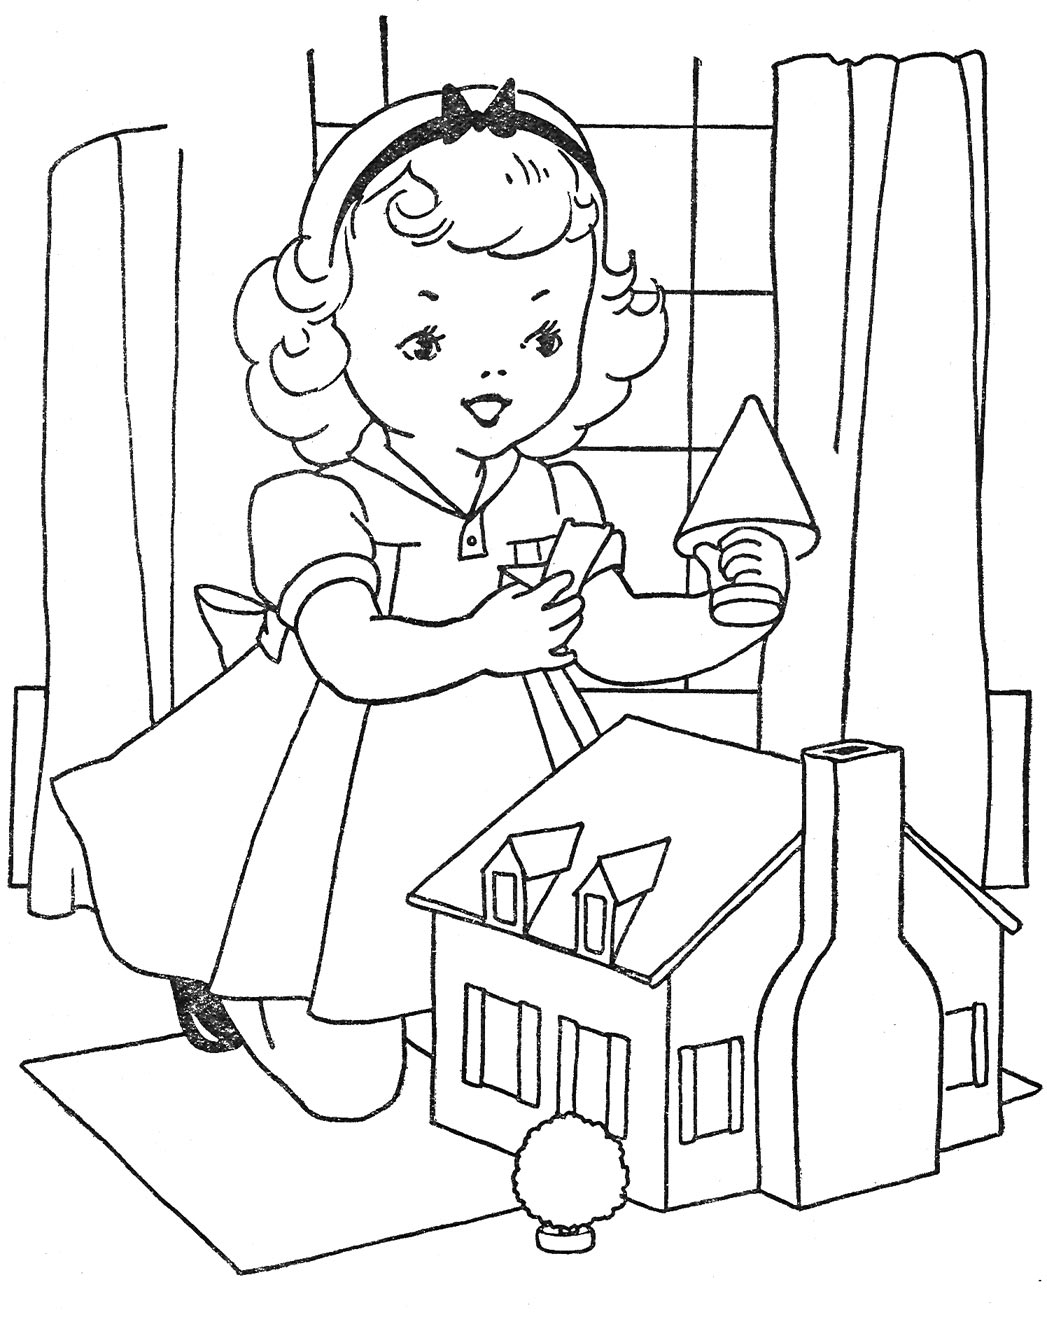 Images About Playing Kids Enjoying Life Embroidery Patterns